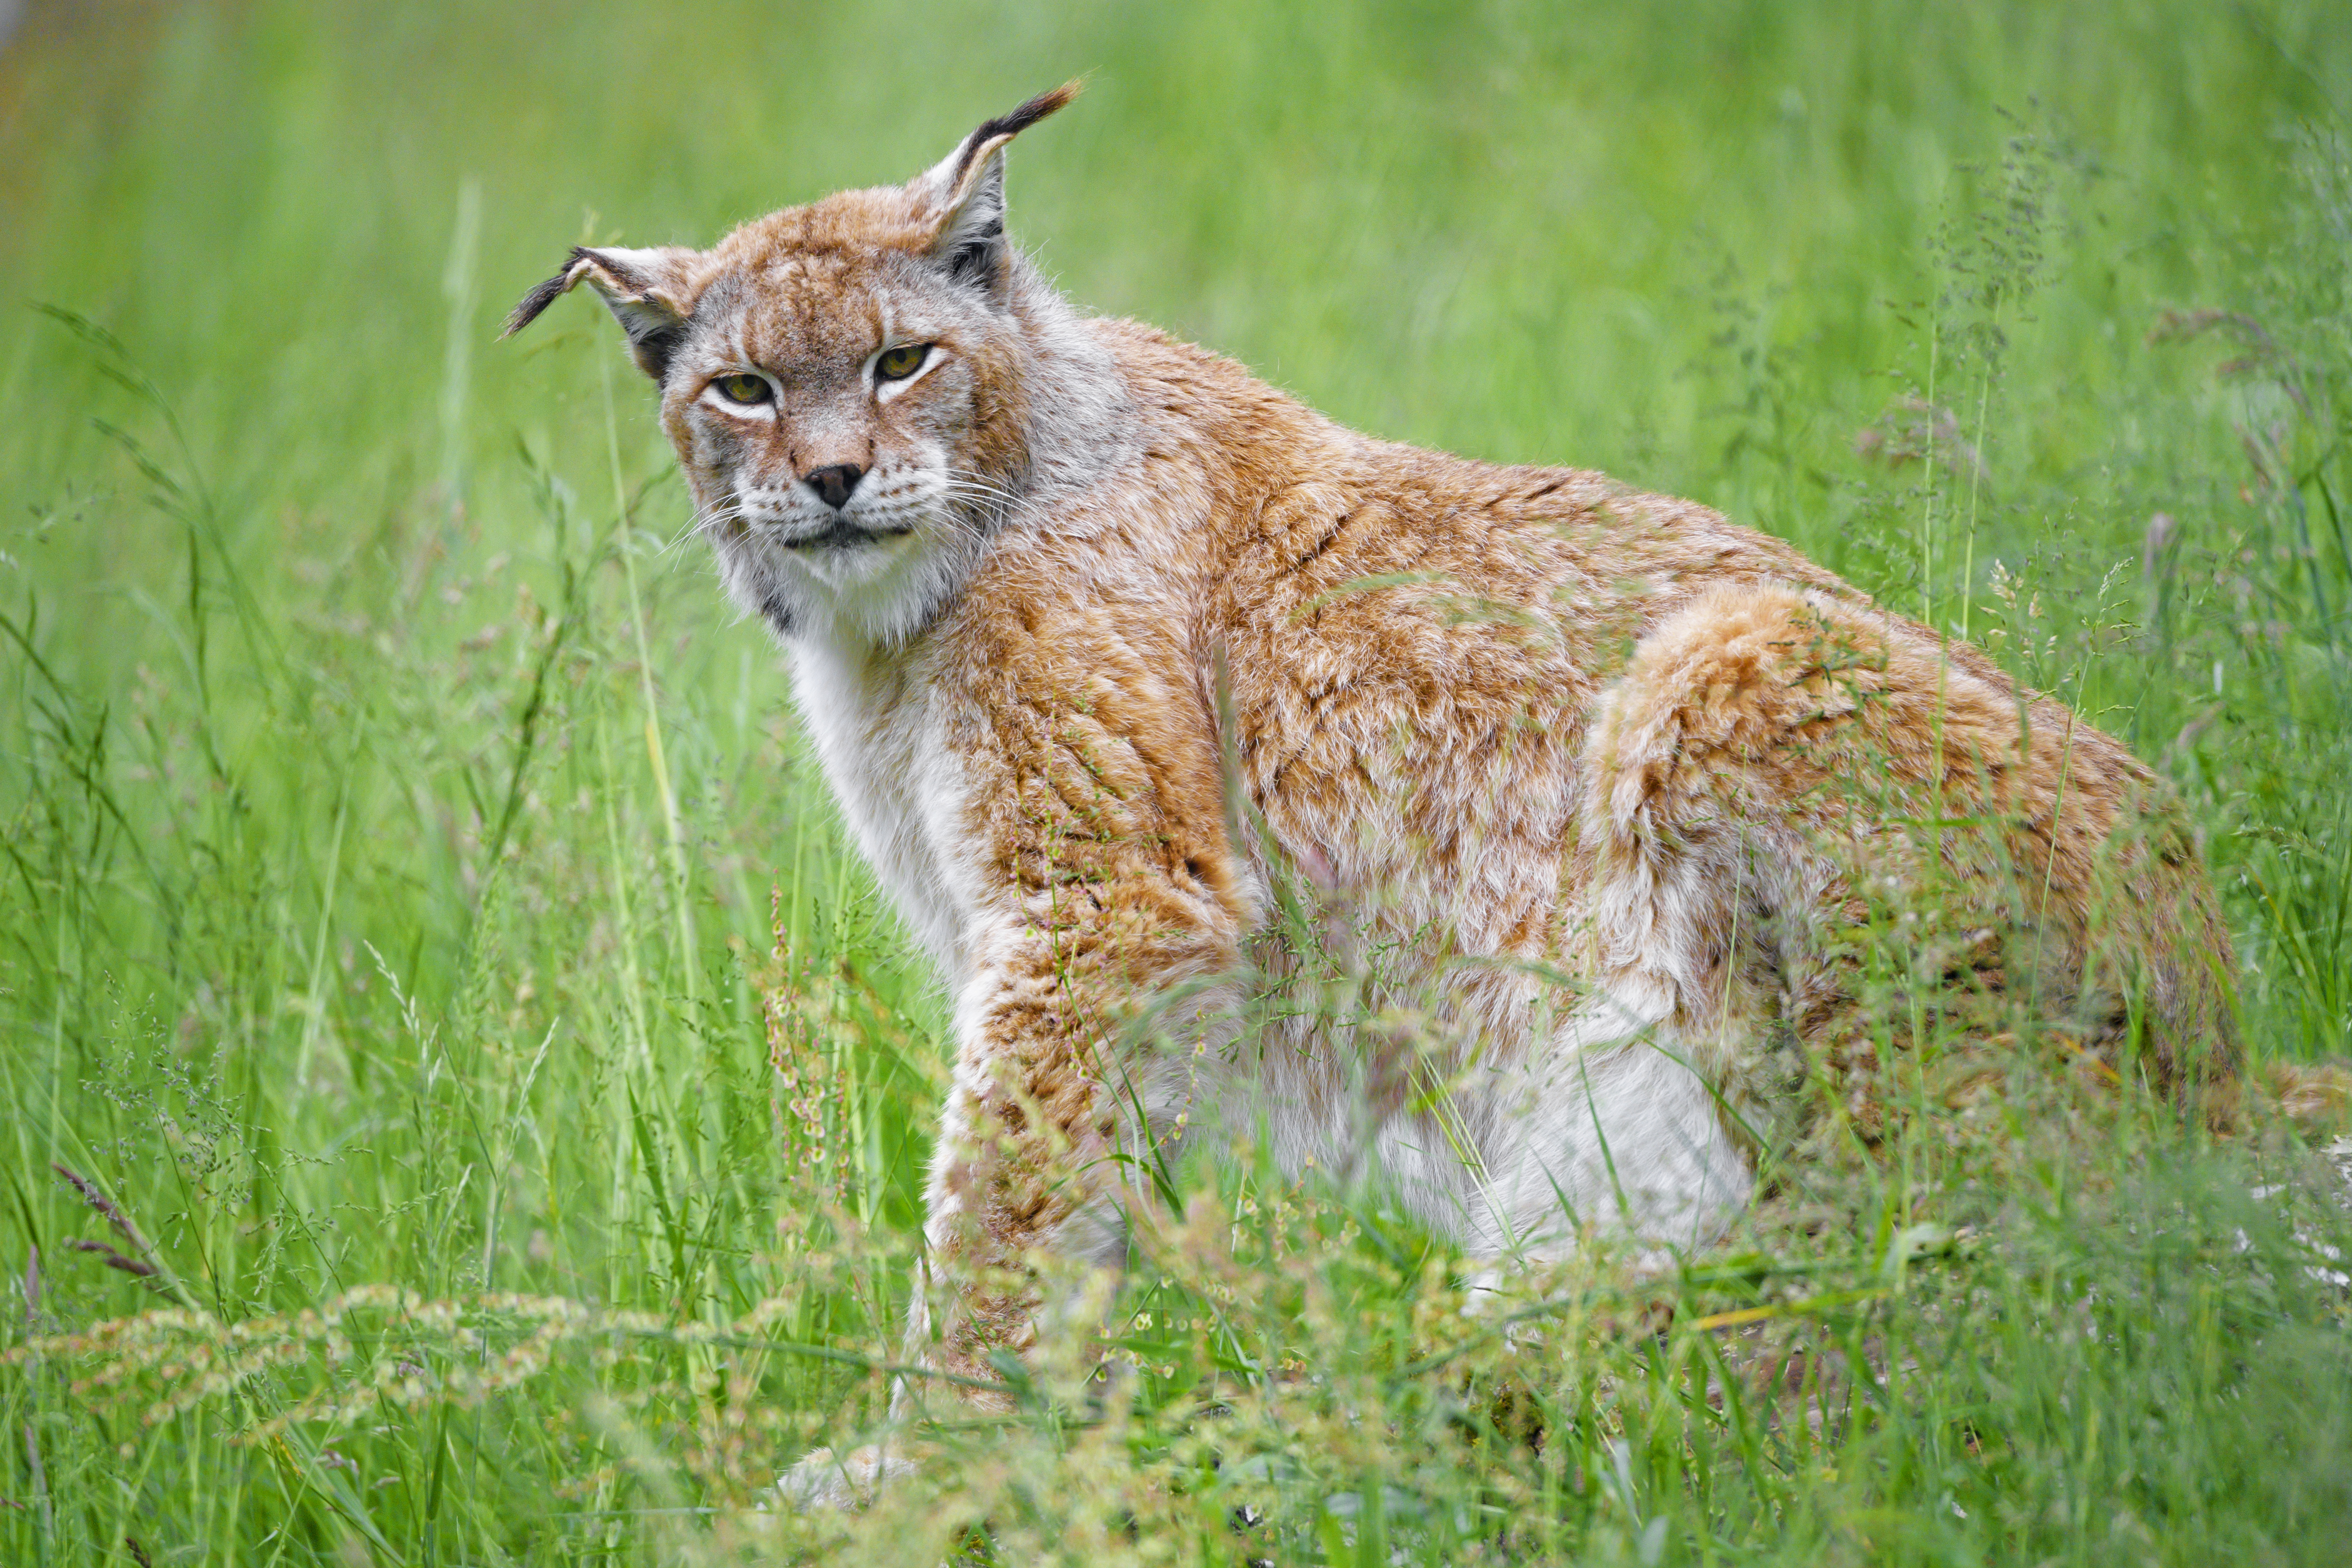 104333 download wallpaper Animals, Iris, Big Cat, Sight, Opinion, Animal, Plants screensavers and pictures for free